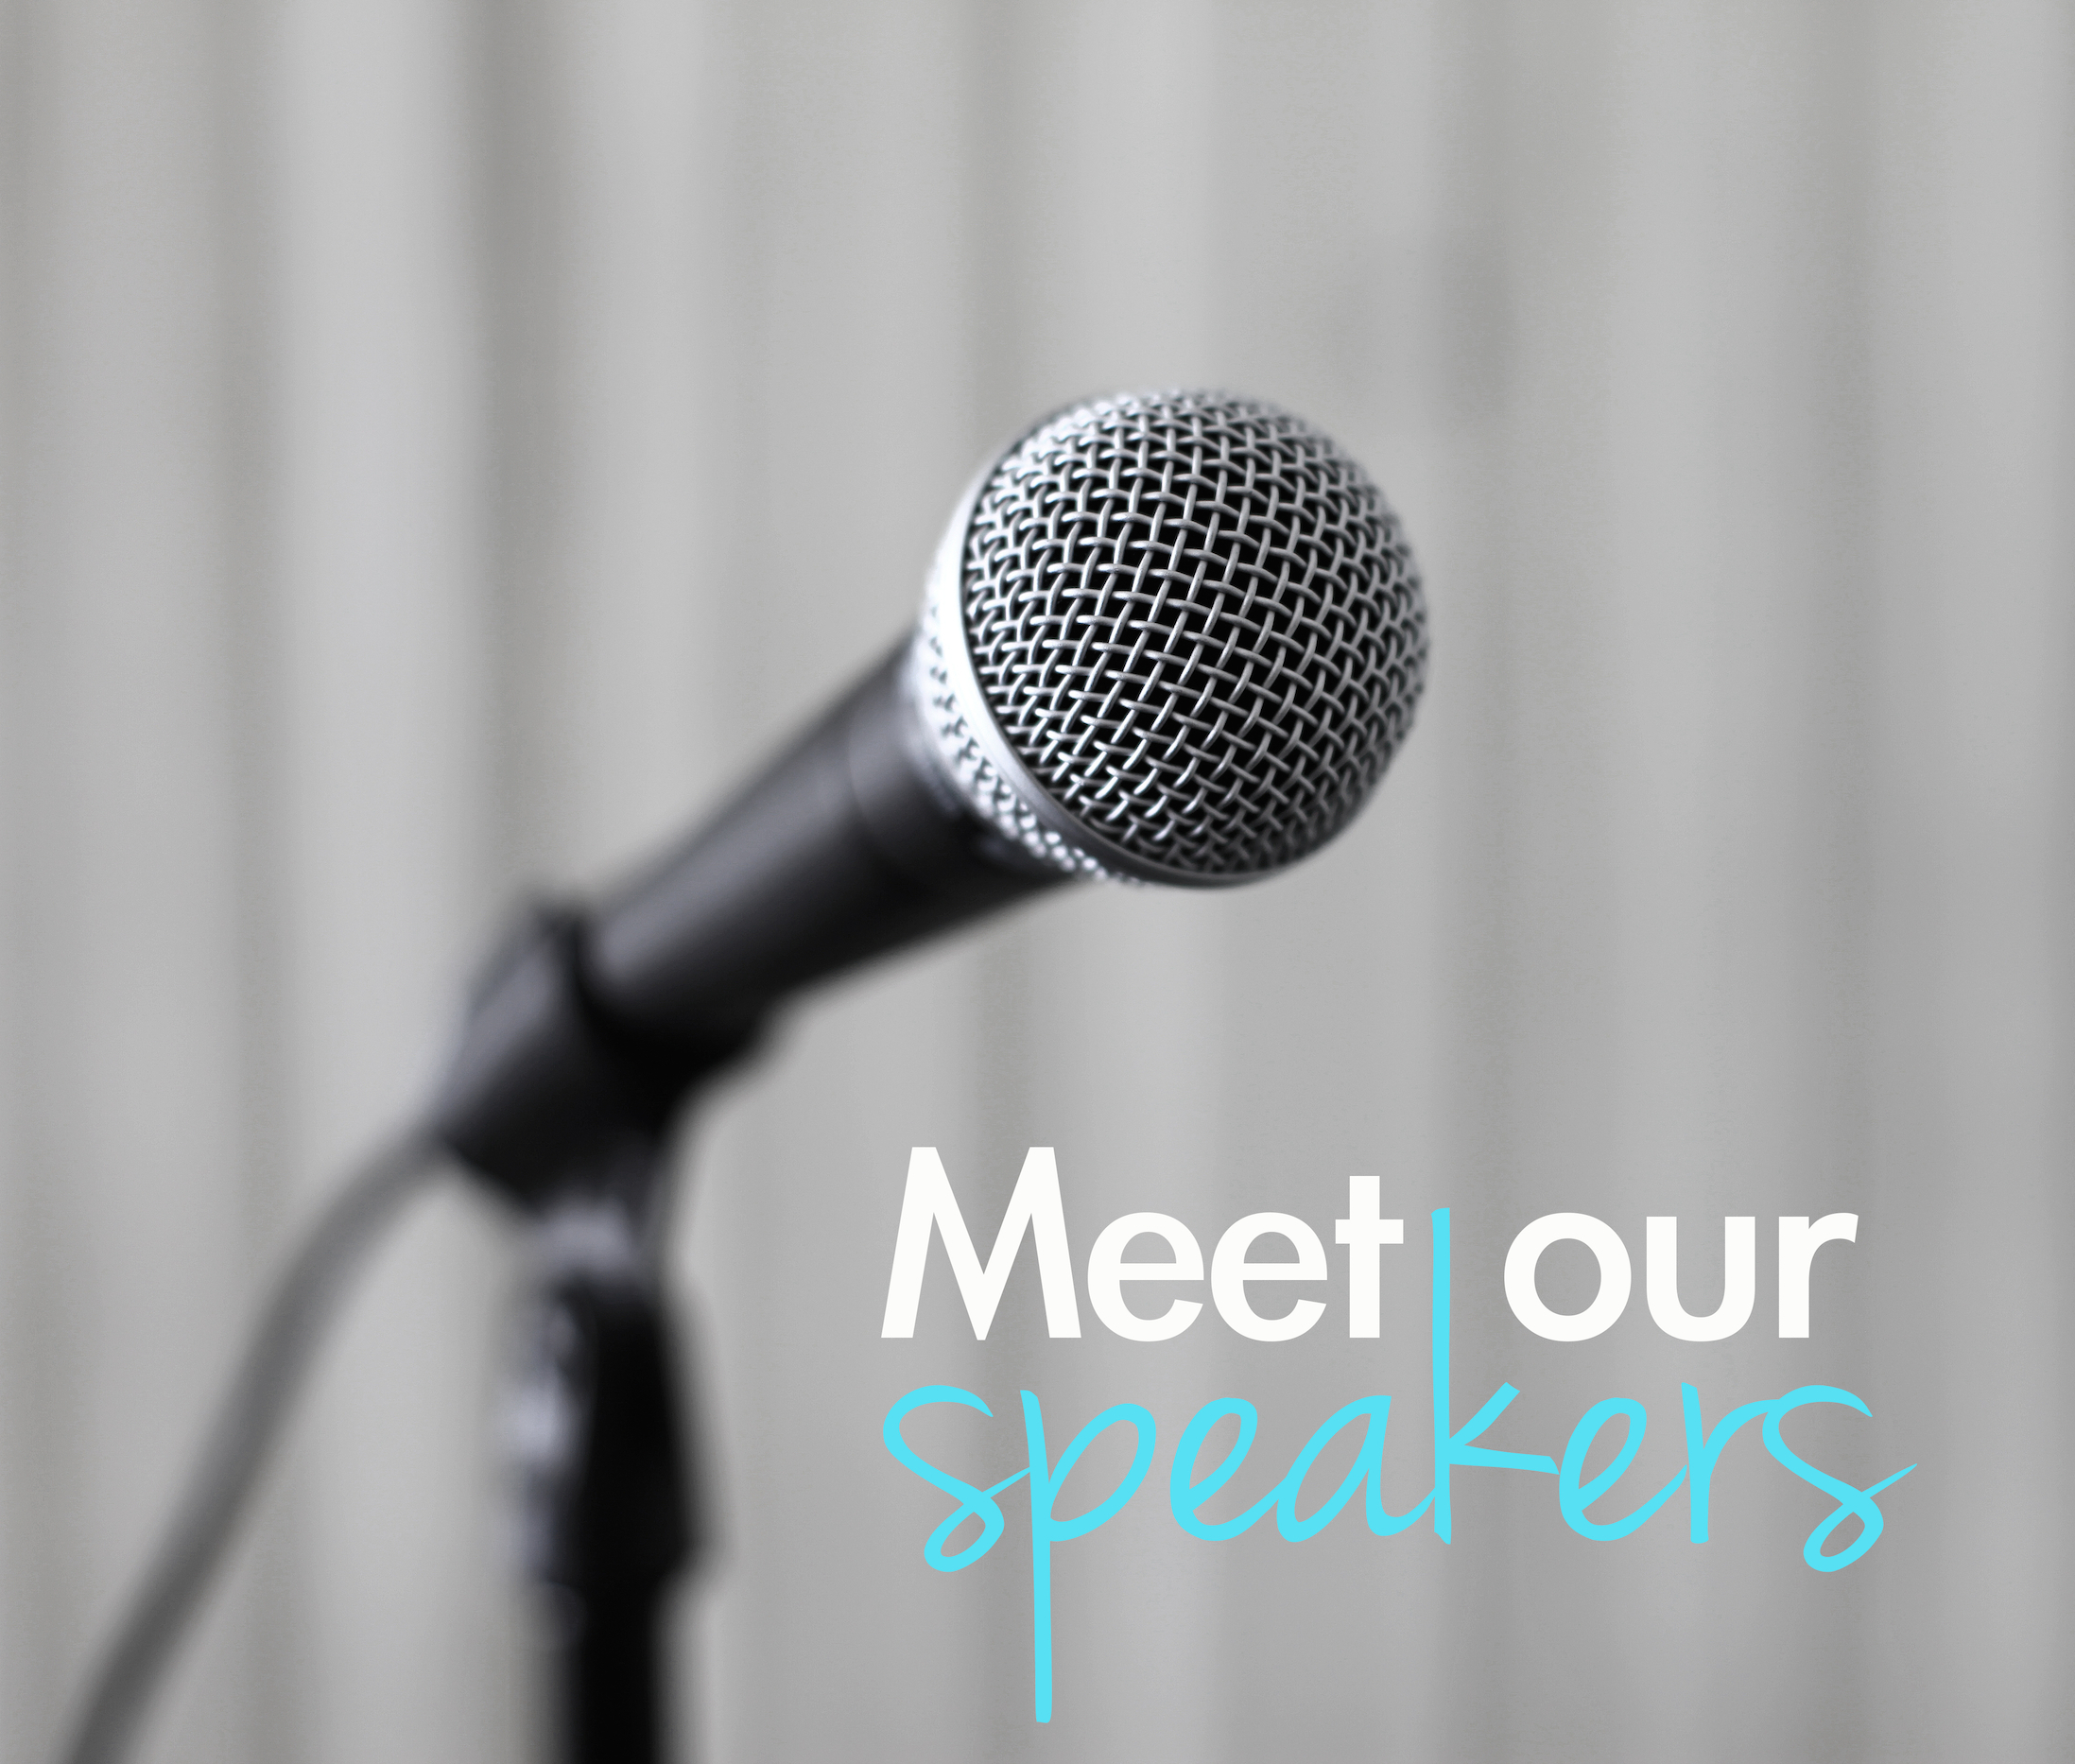 meet-our-speakers_2